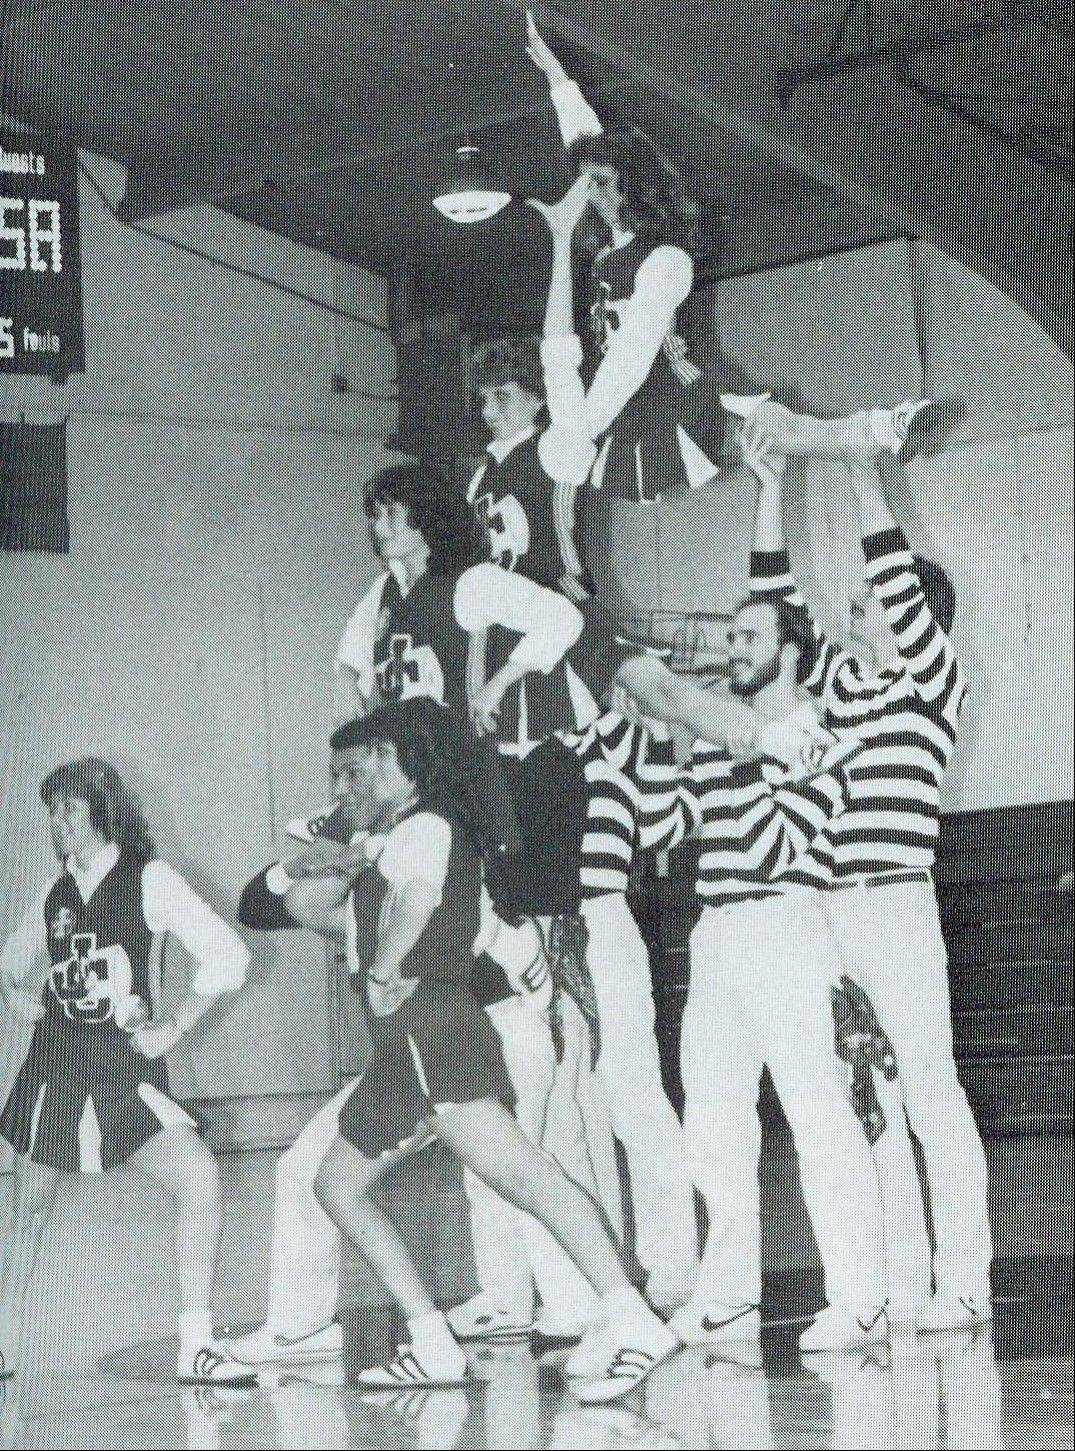 A Judson College cheerleading squad from the early 1980s.